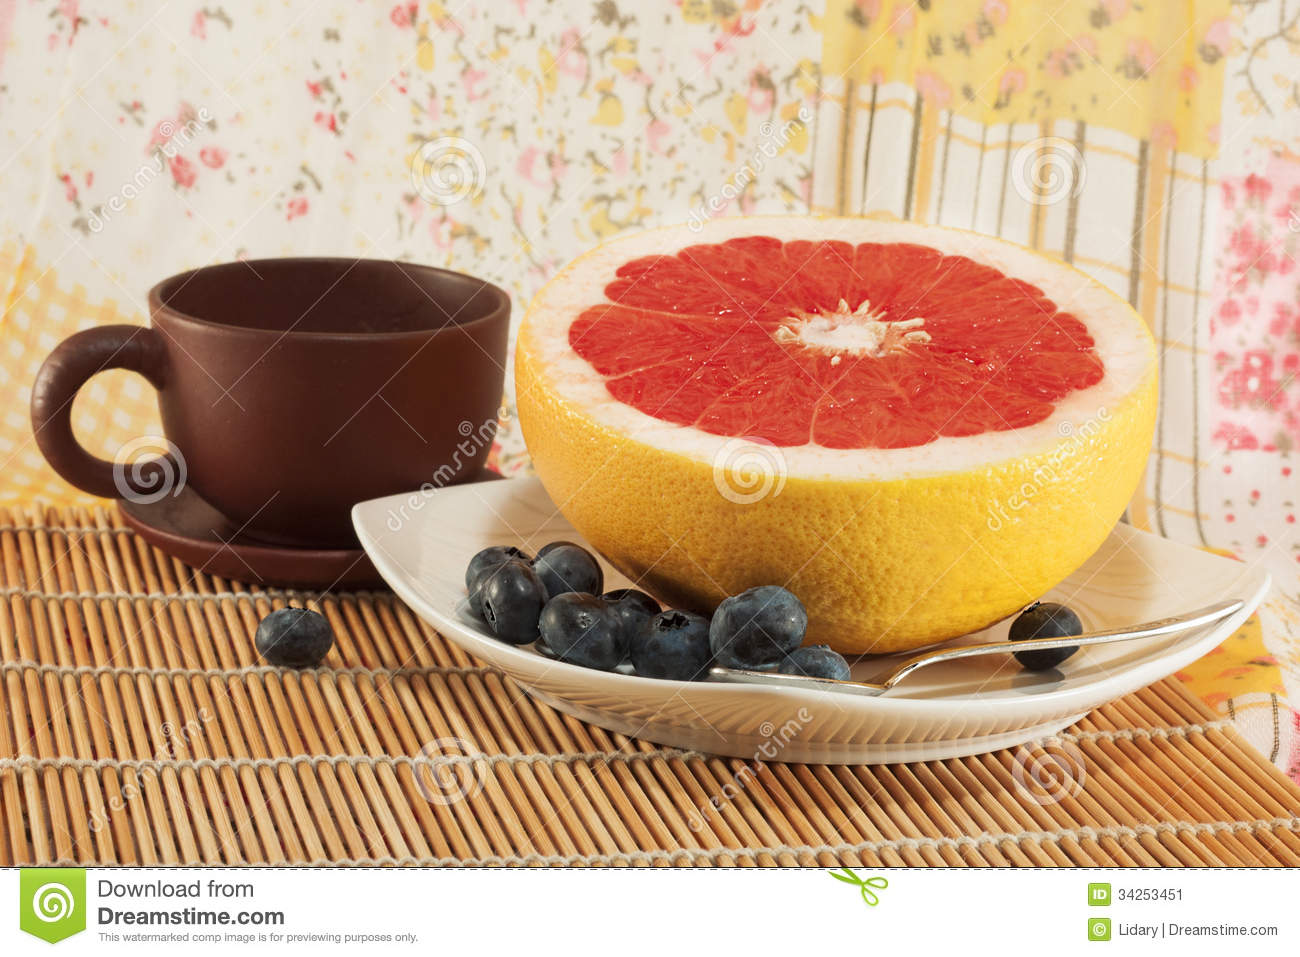 how to cut a grapefruit for breakfast